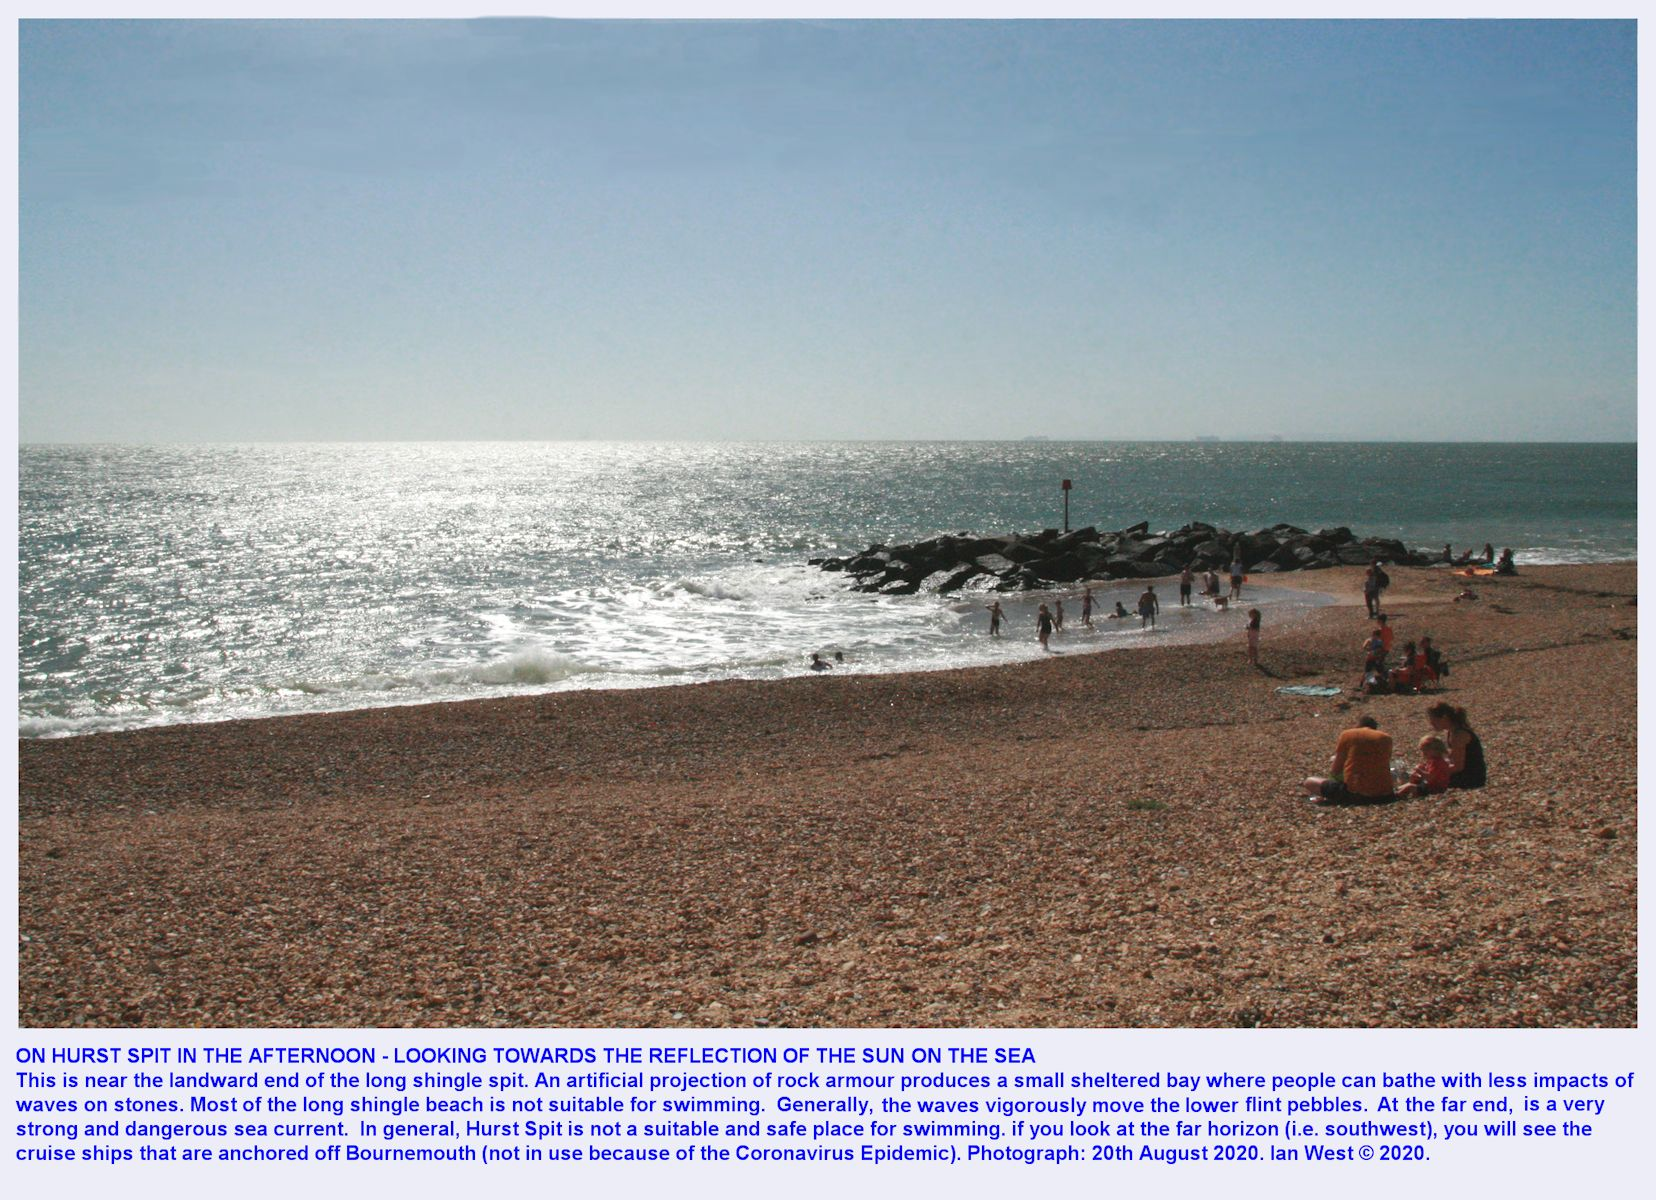 Hurst Spit, a view from near the landward sea defences, looking southward to the sea, and with a clear, sunny sky above, 20th August, 2020